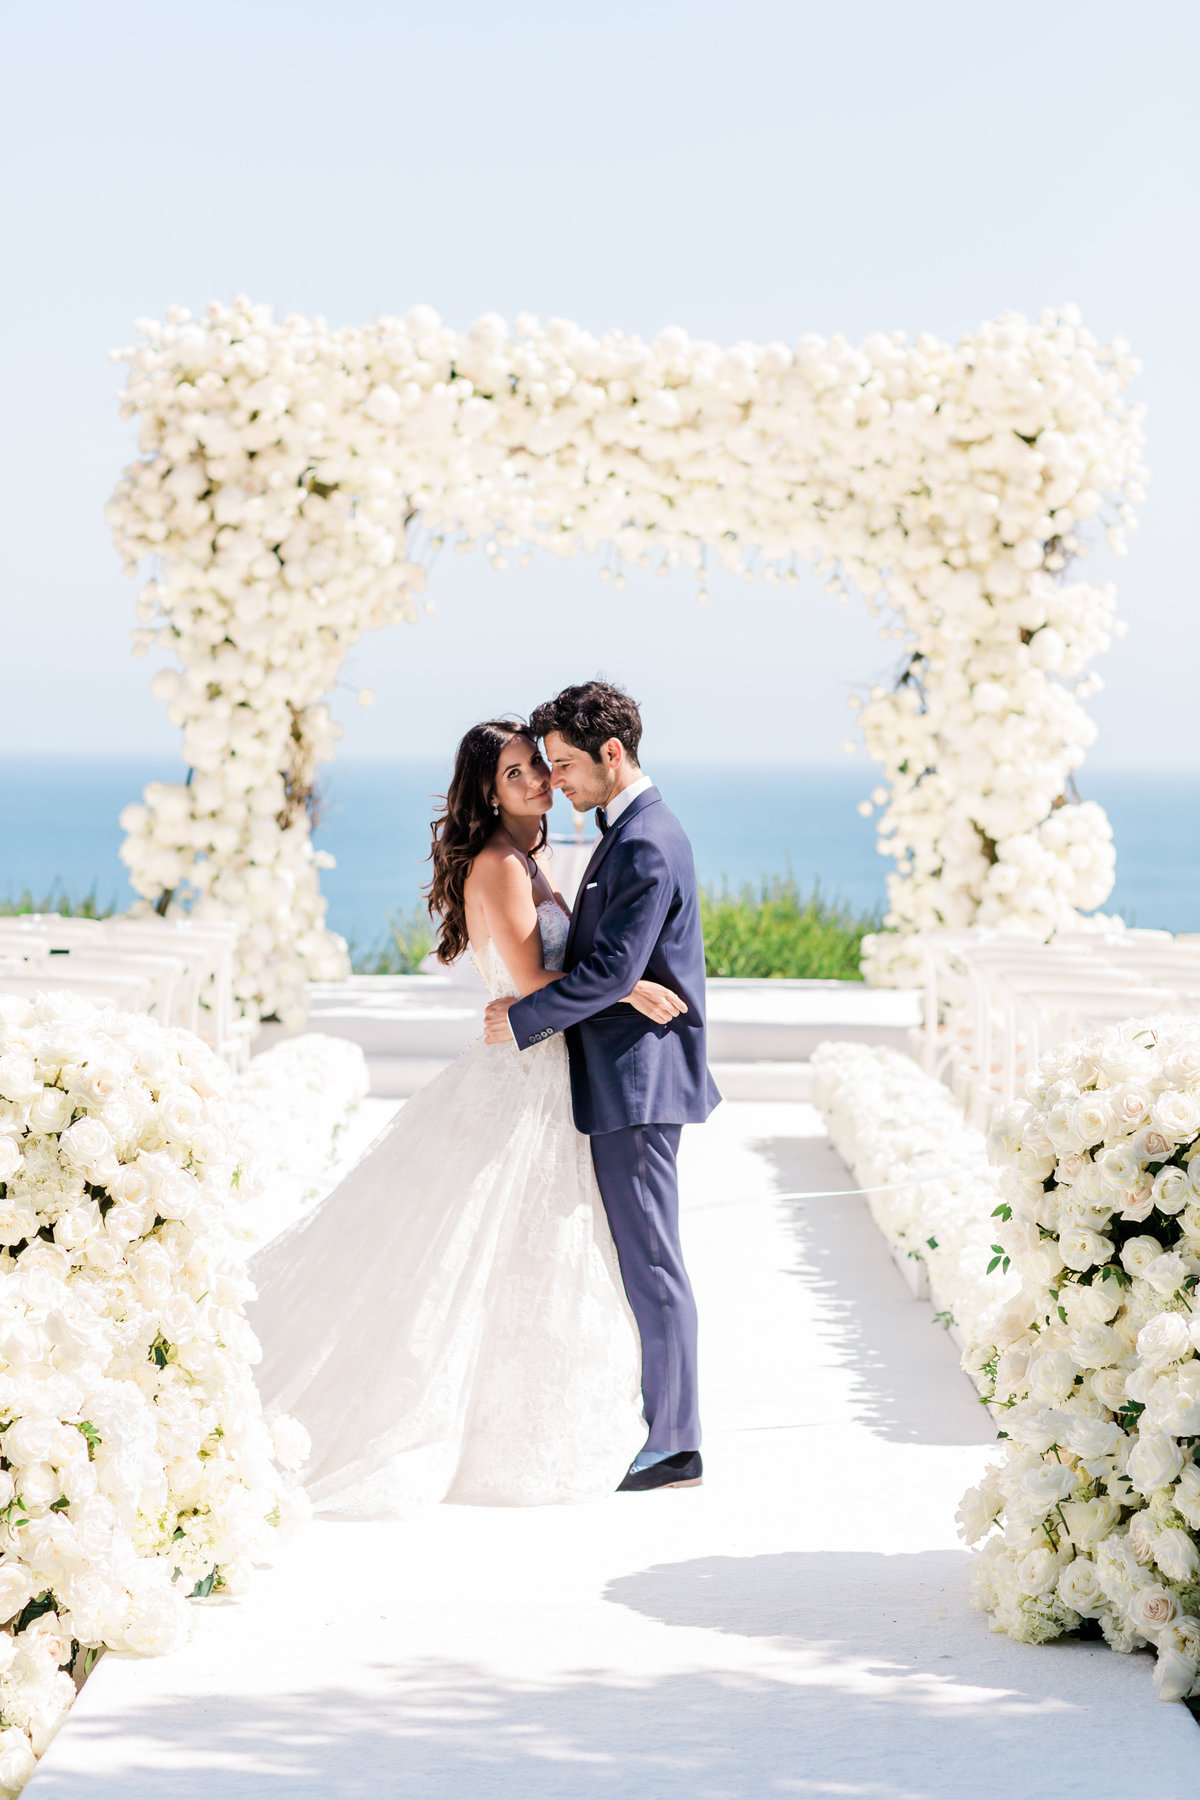 Malibu Private Estate Wedding_Valorie Darling Photography_0E1A7644